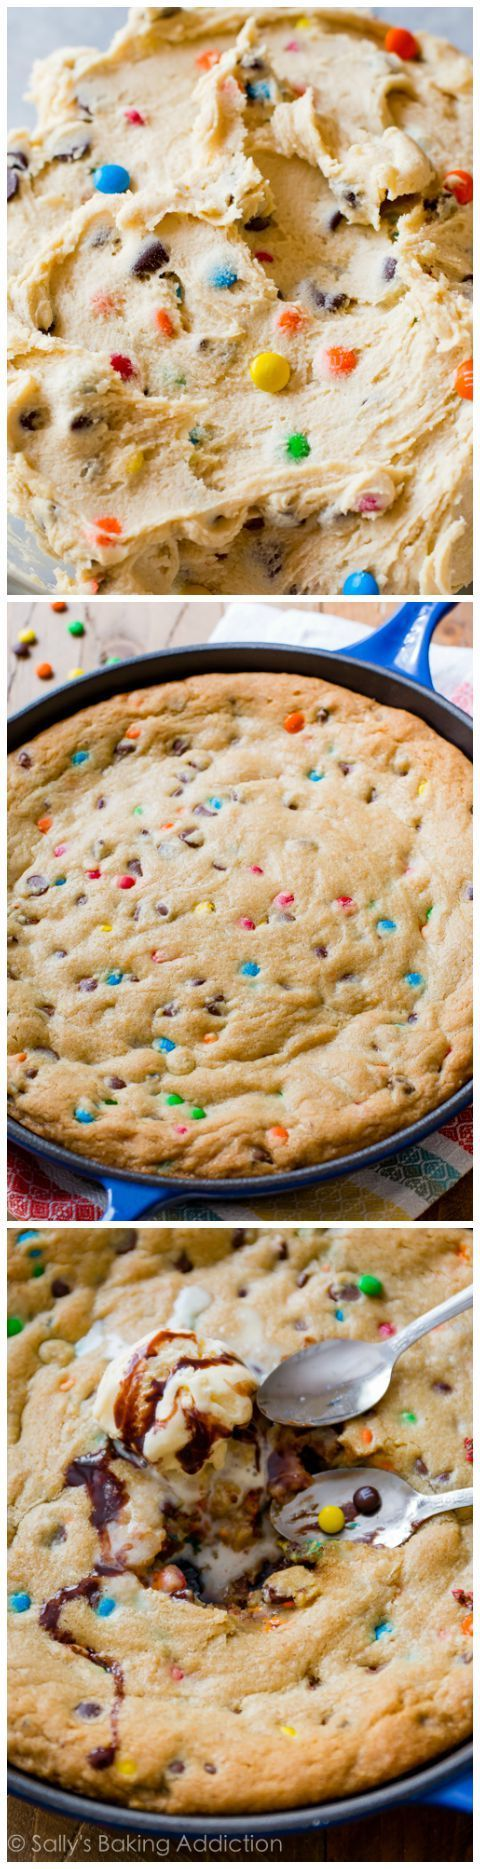 Bake your chocolate chip cookies in a skillet to save time and effort!! Add M&Ms too! Recipe found on sallysbakingaddiction.com